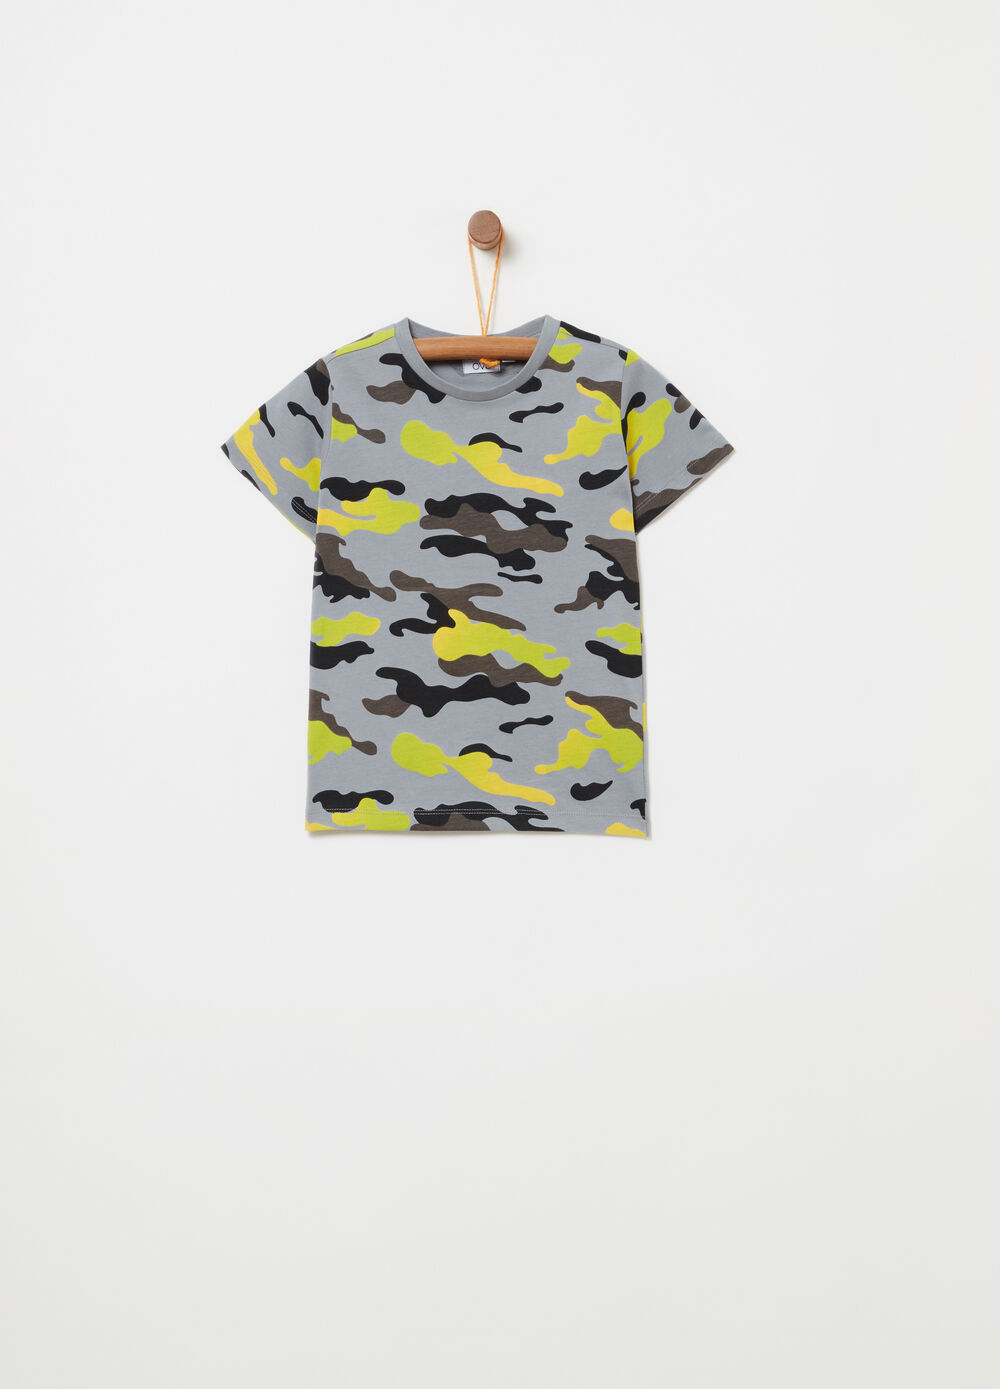 T-shirt with all-over camouflage print